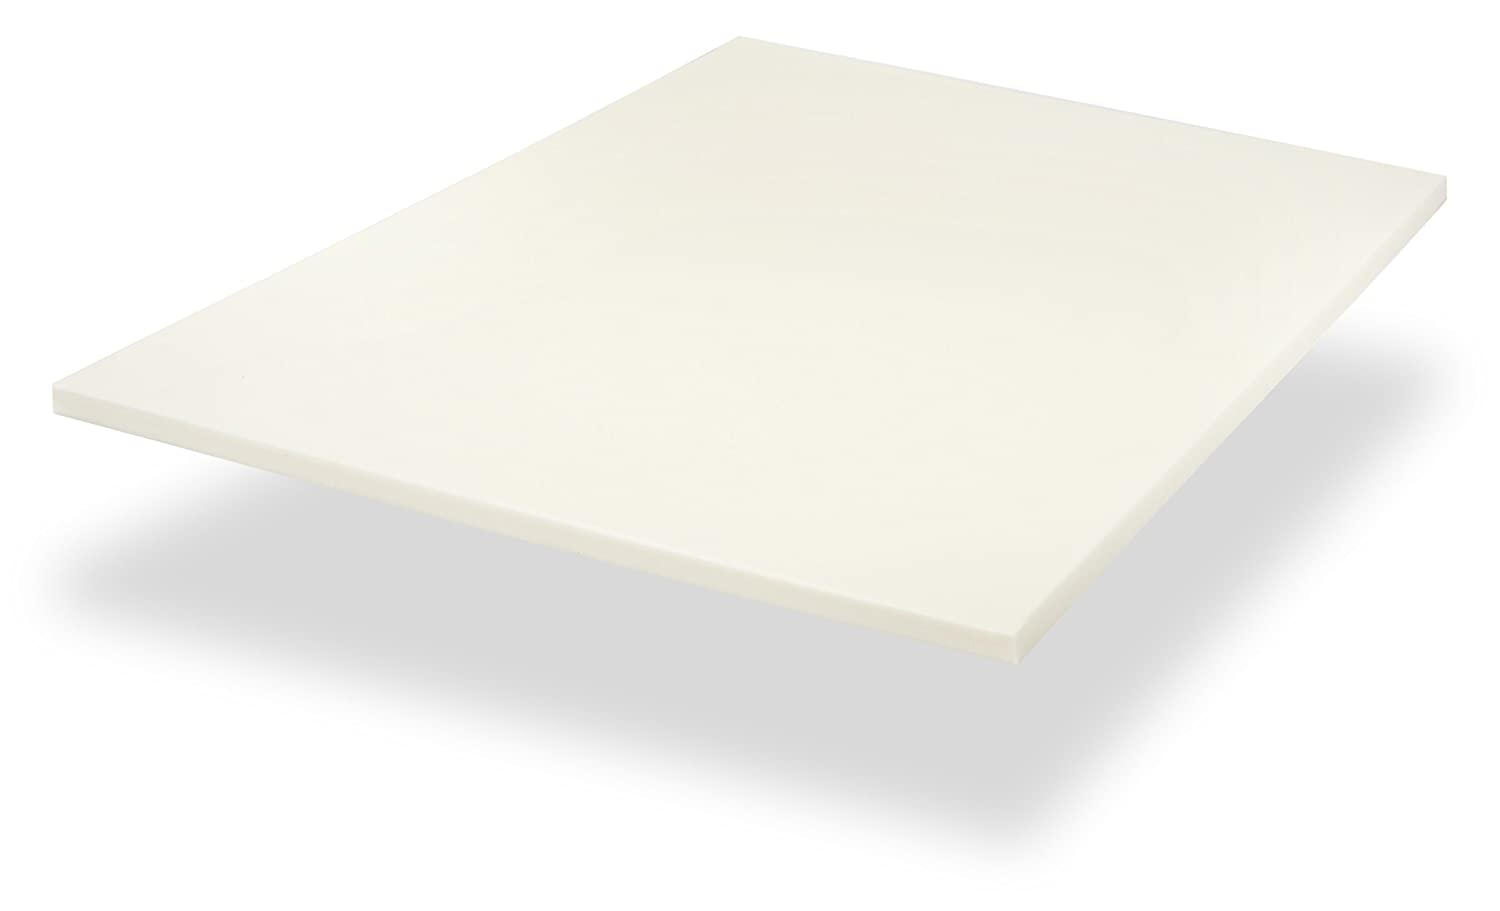 Red Nomad - Queen Size 2 Inch Thick, Ultra Premium Visco Elastic Memory Foam Mattress Pad Bed Topper - Made in the USA